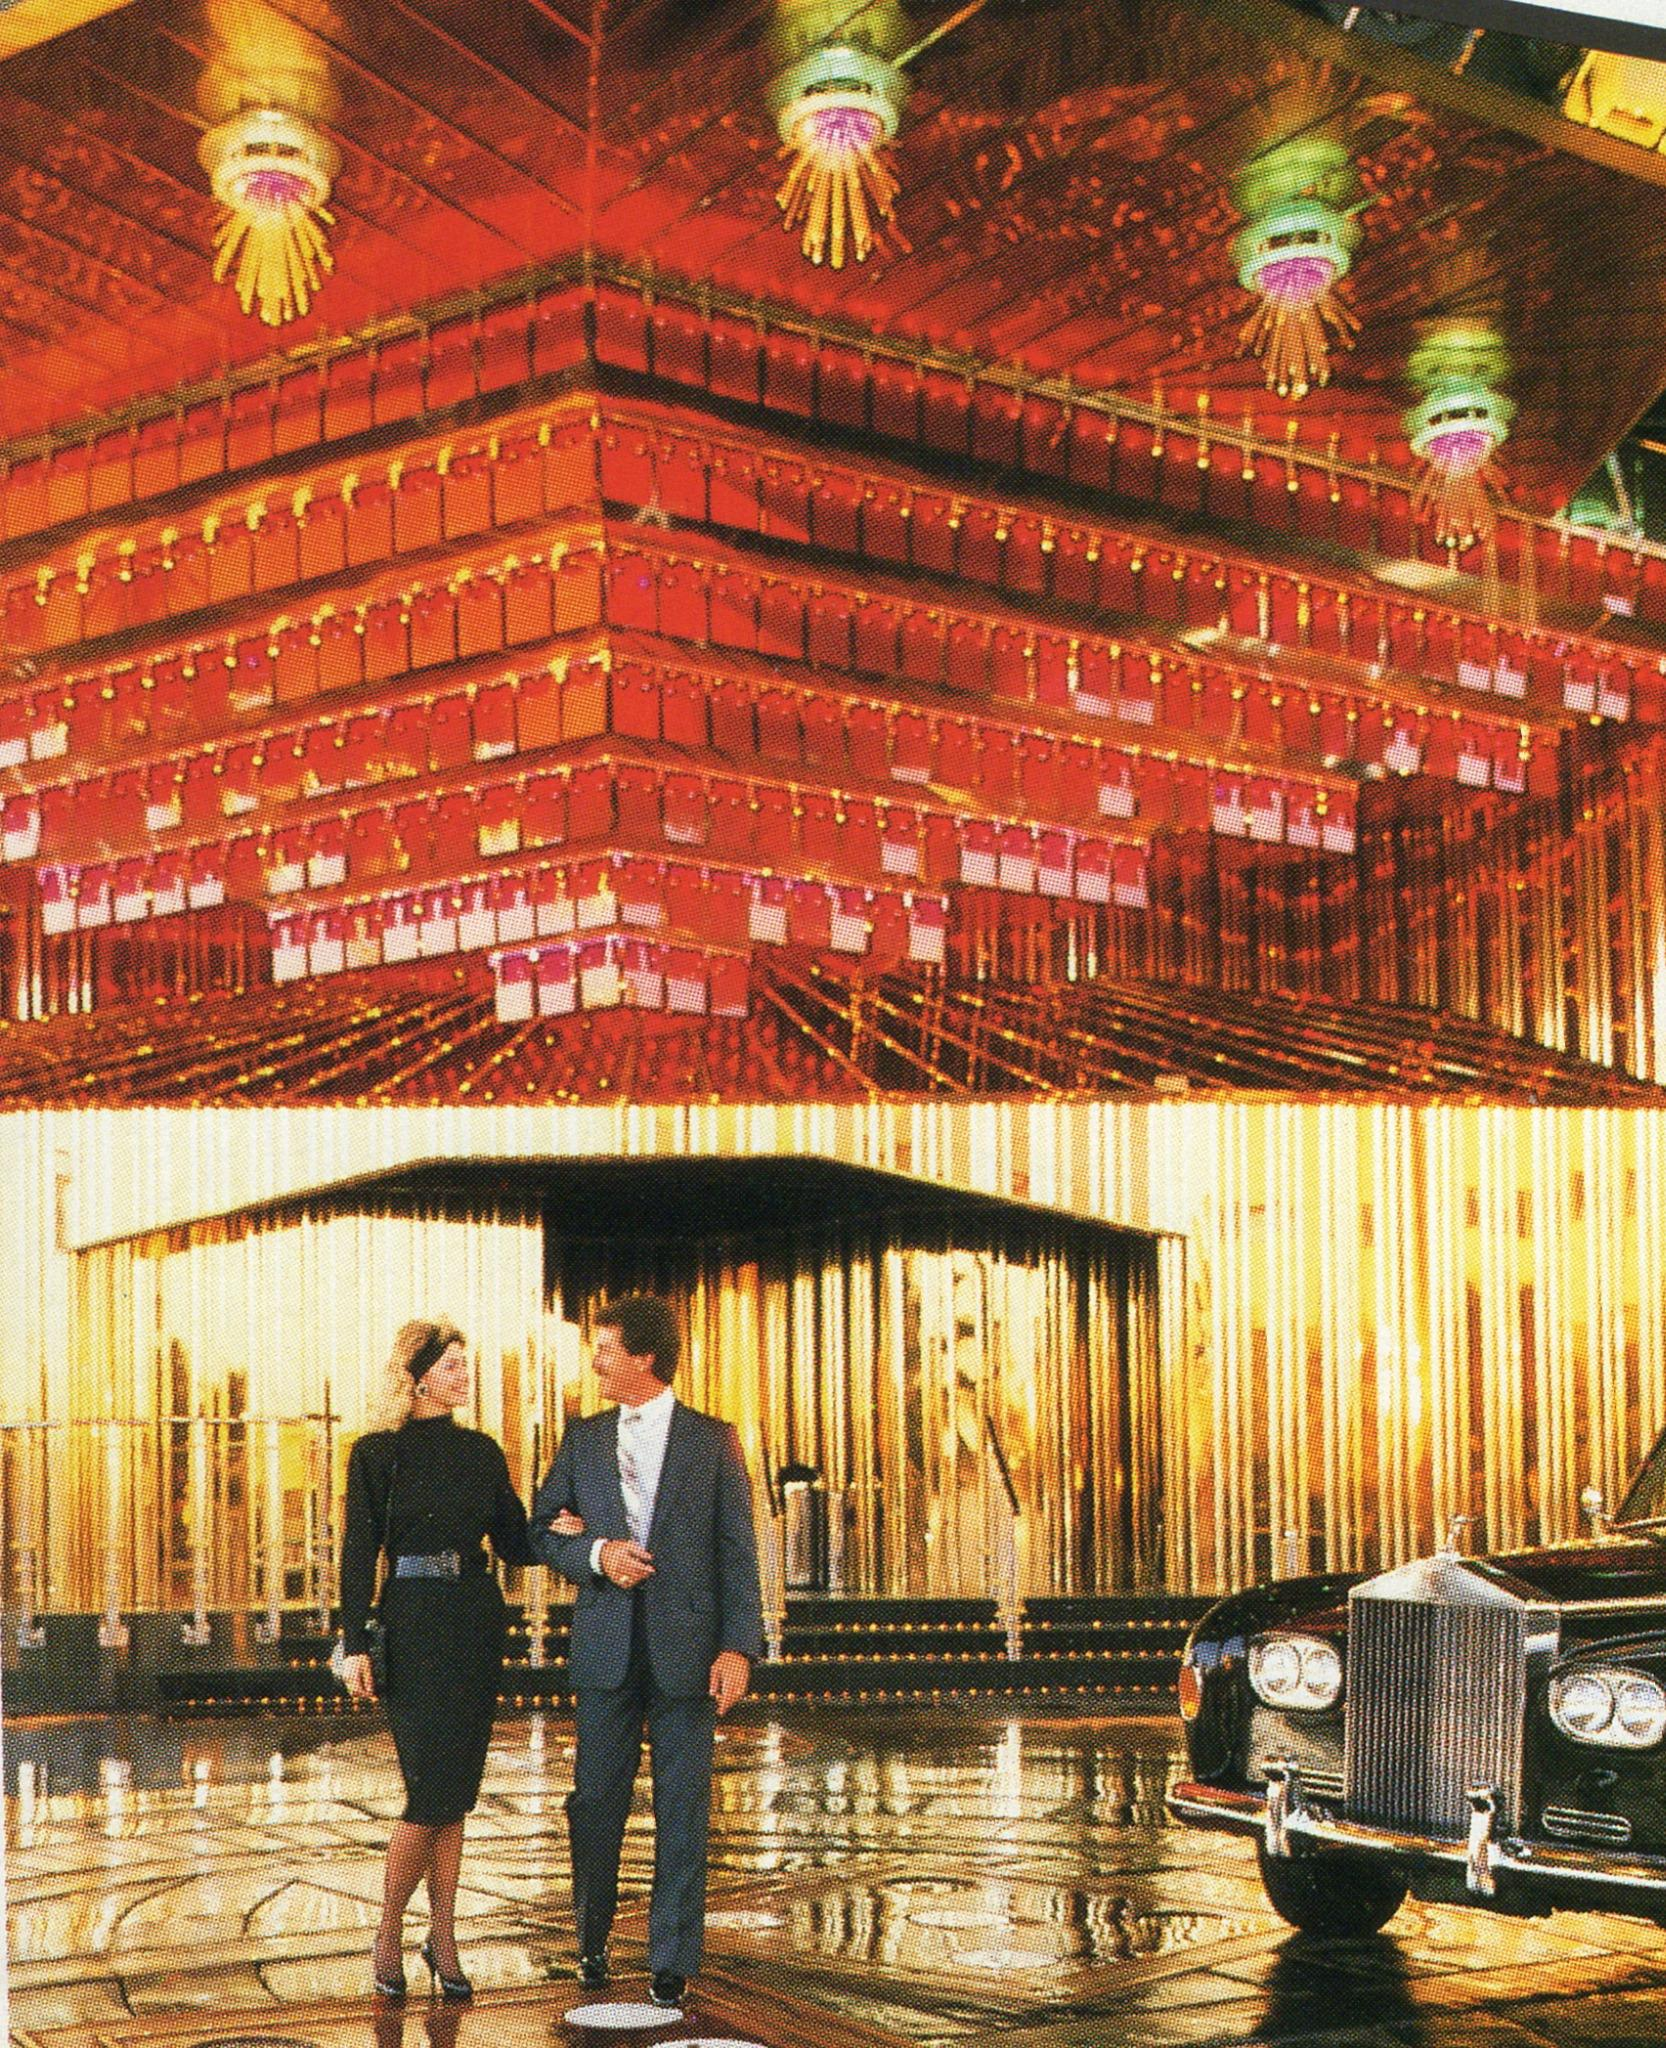 It's 1987 in #Vegas and after massive losses, I'm leaving Bob Stupak's Vegas World in style. http://t.co/J17Aamp4BZ